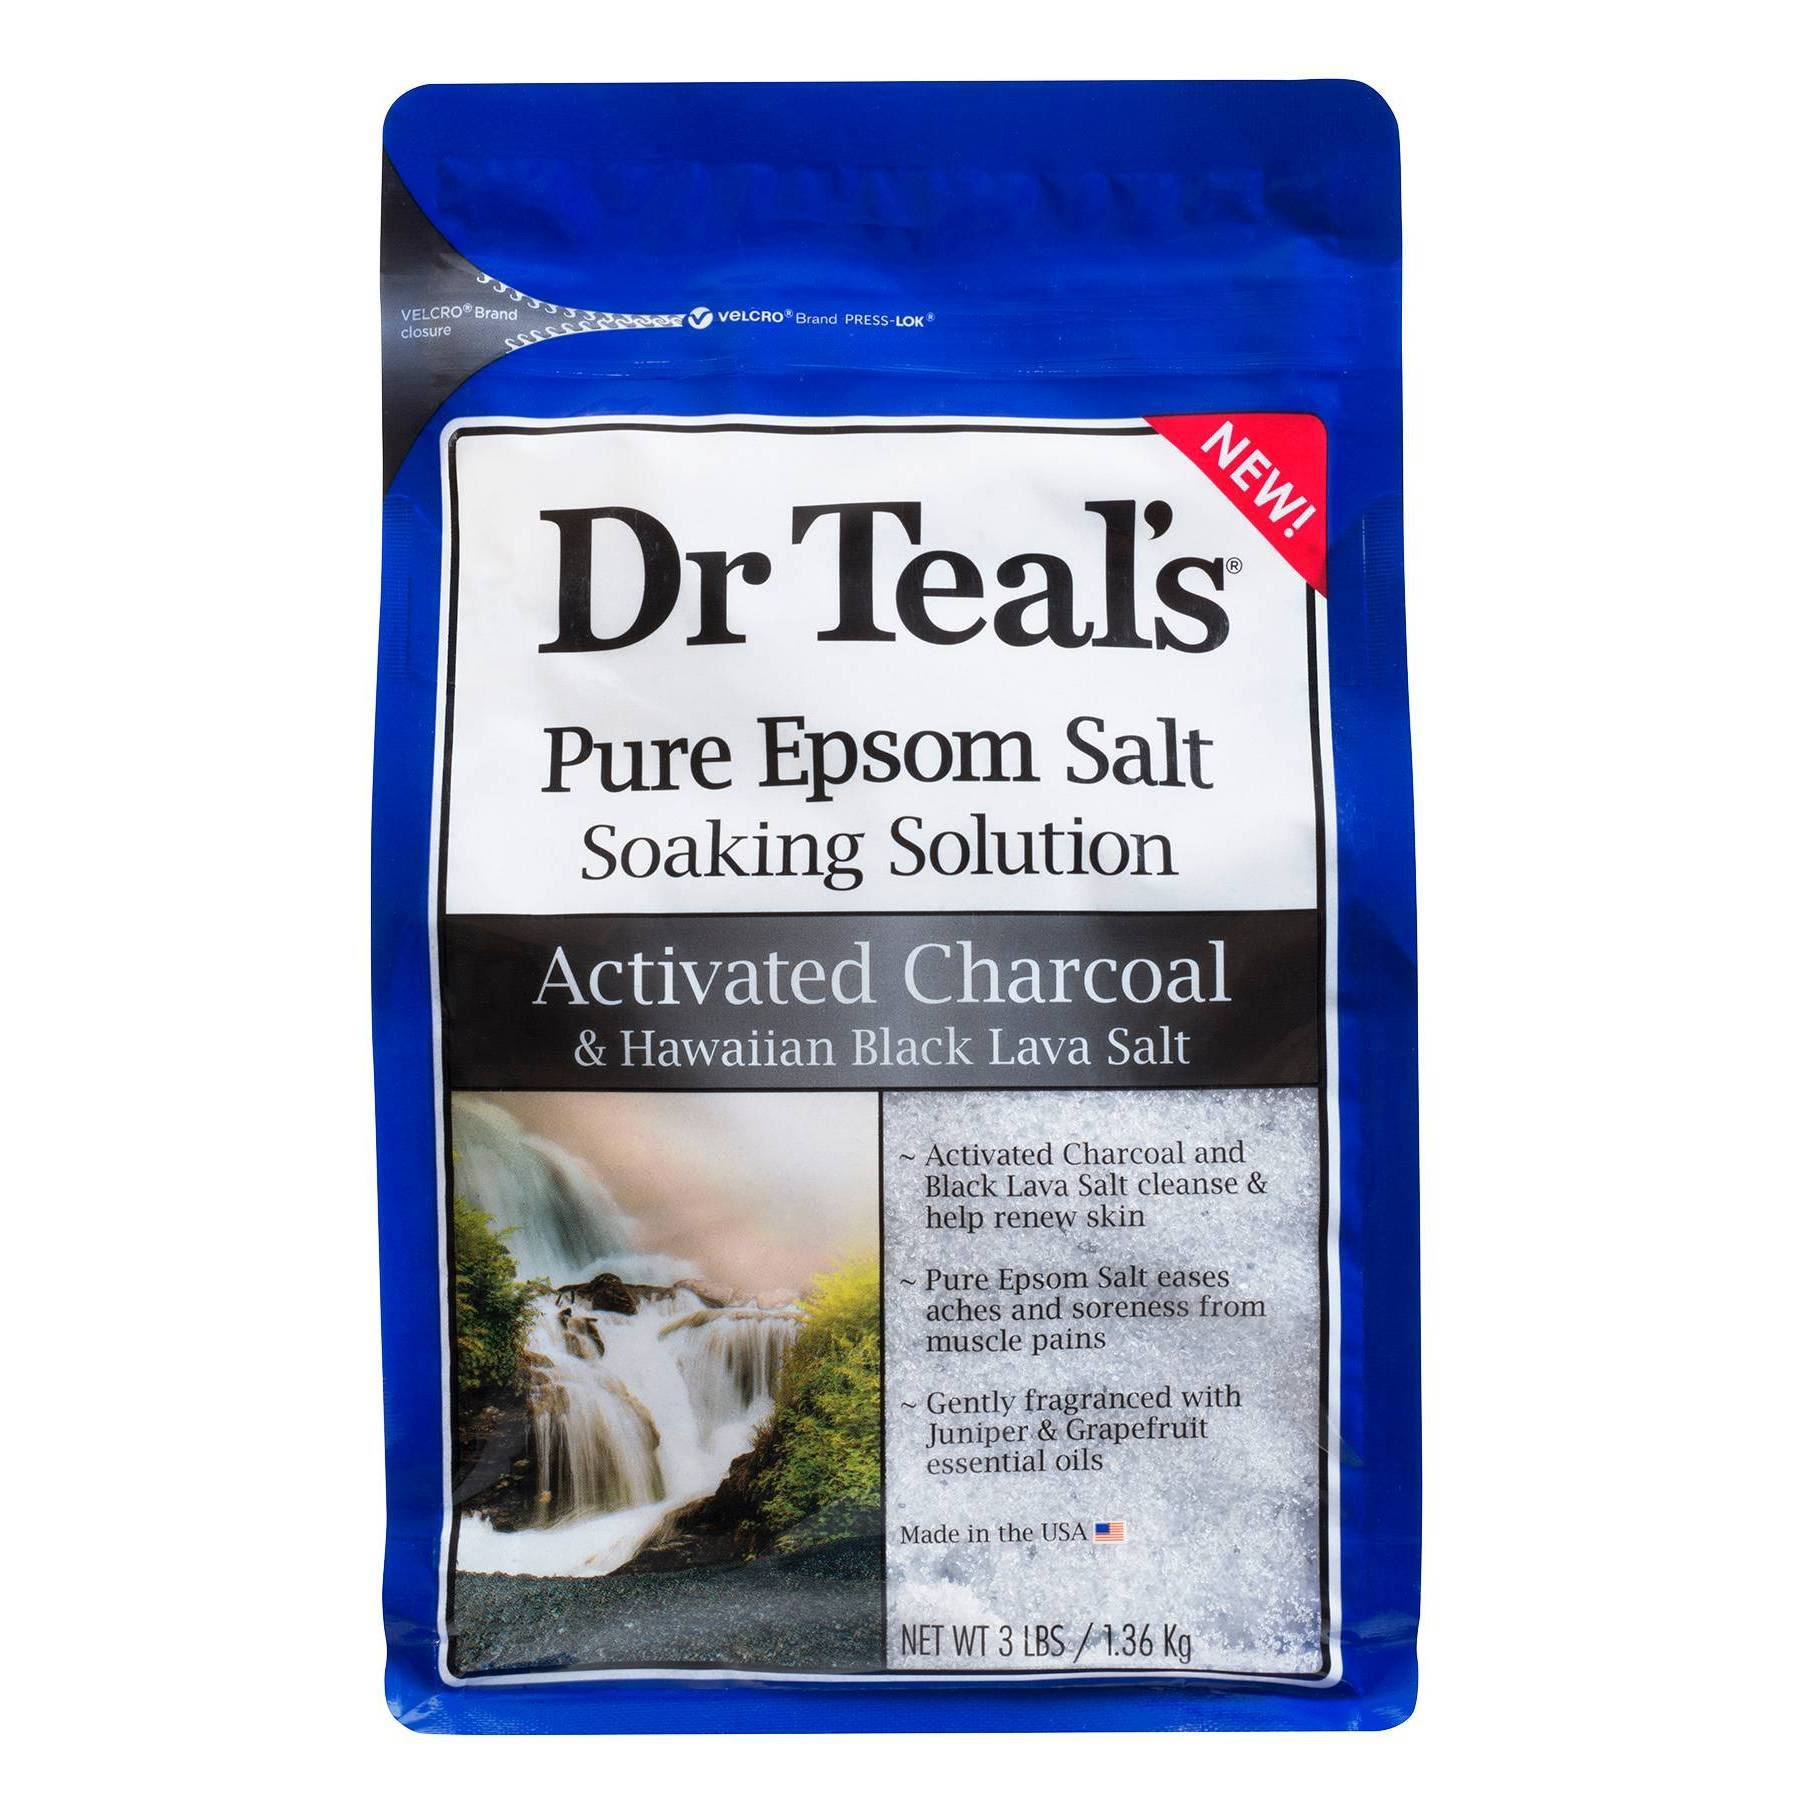 Dr Teal's Soaking Solution Activated Charcoal and Black Lava Salt - 3lbs